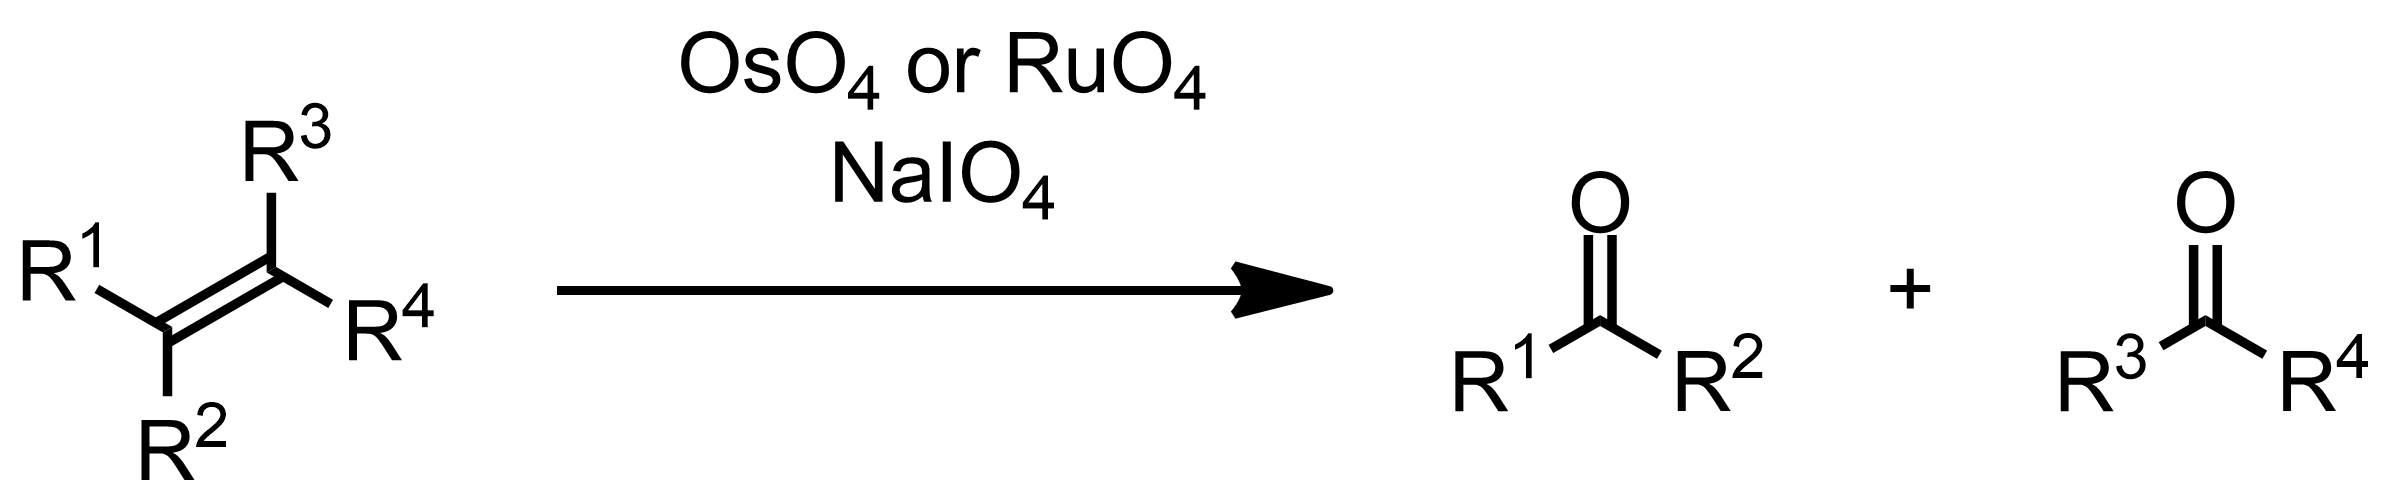 Schematic representation of the Lemieux-Johnson Oxidation.